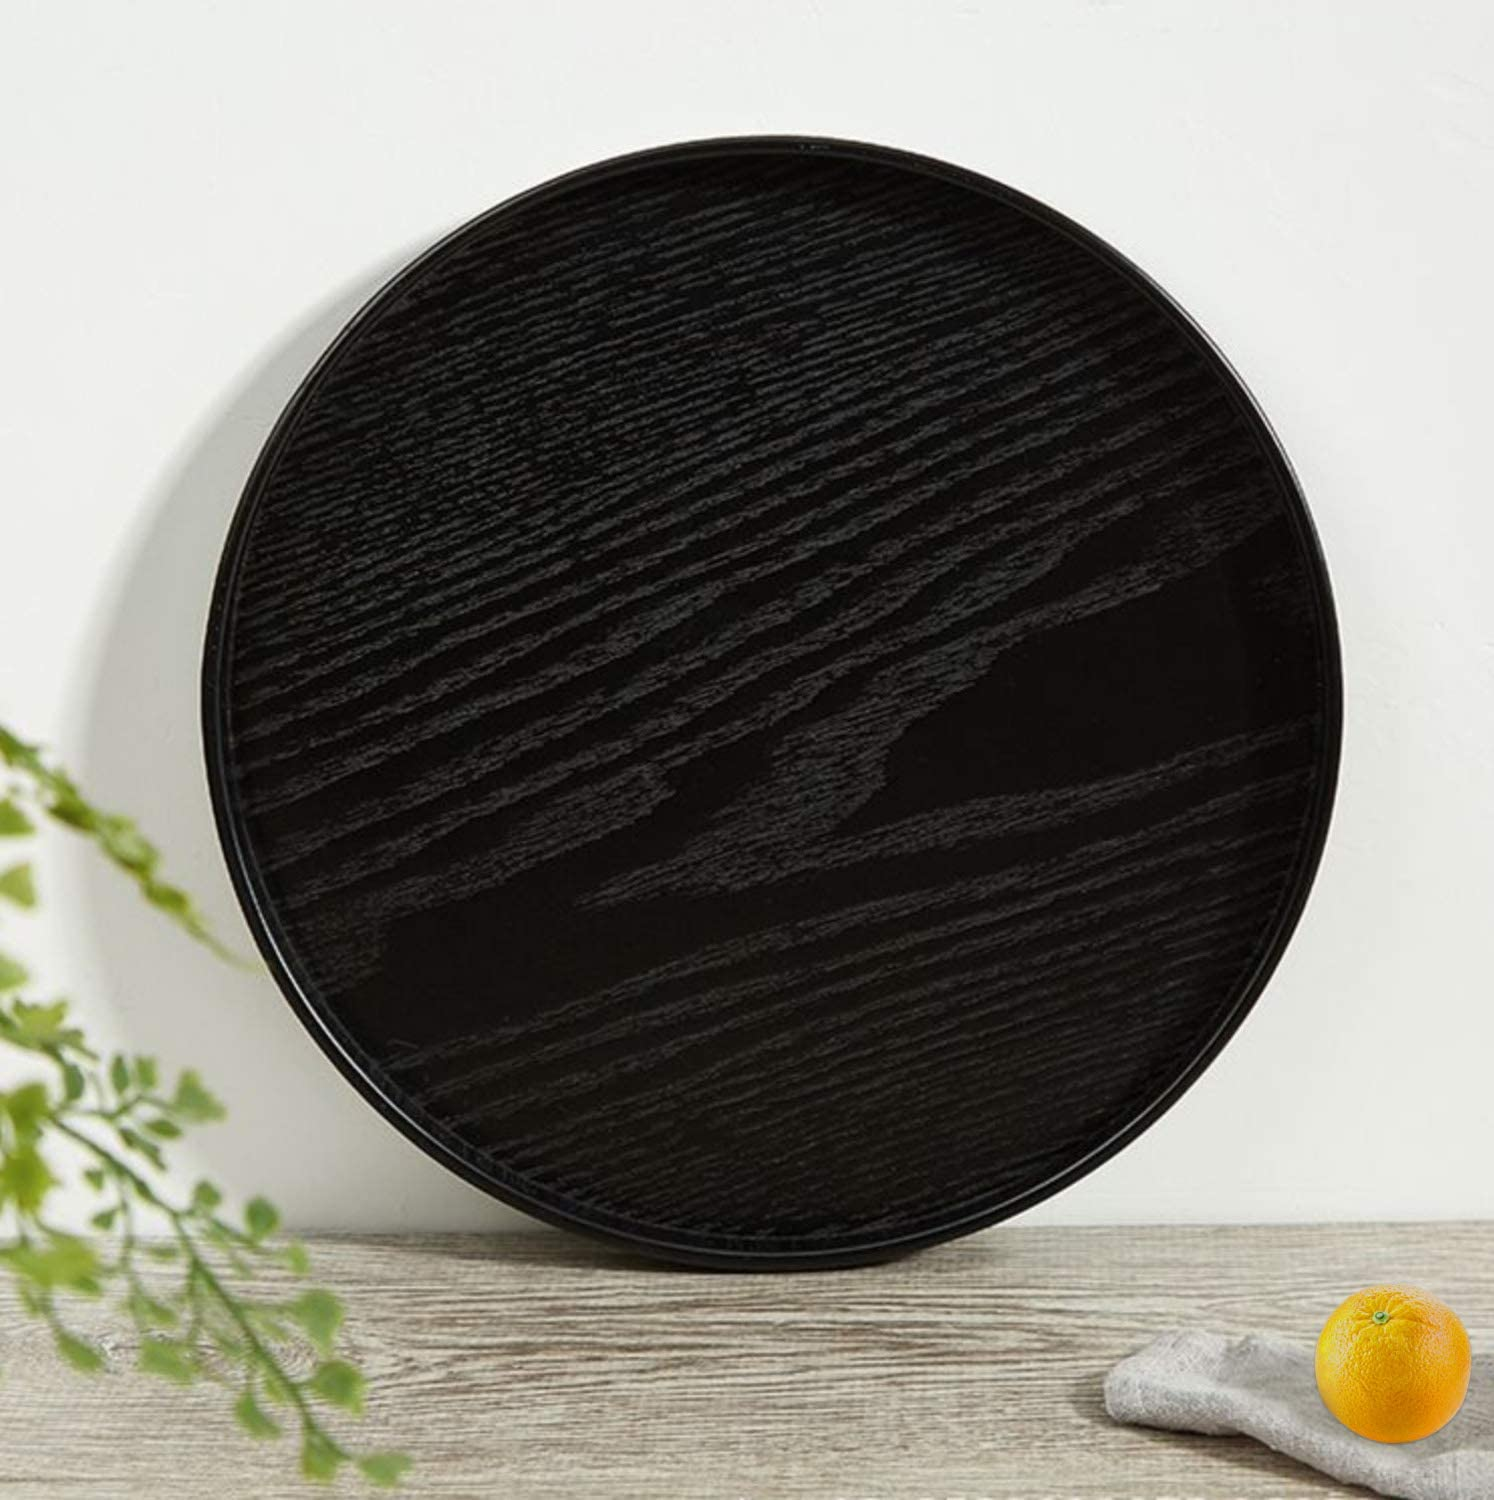 Solid Wood Serving Tray, Round Non-Slip Tea Coffee Snack Plate, Food Meals Serving Tray with Raised Edges, for Home Kitchen Restaurant (8.2inch, Black)